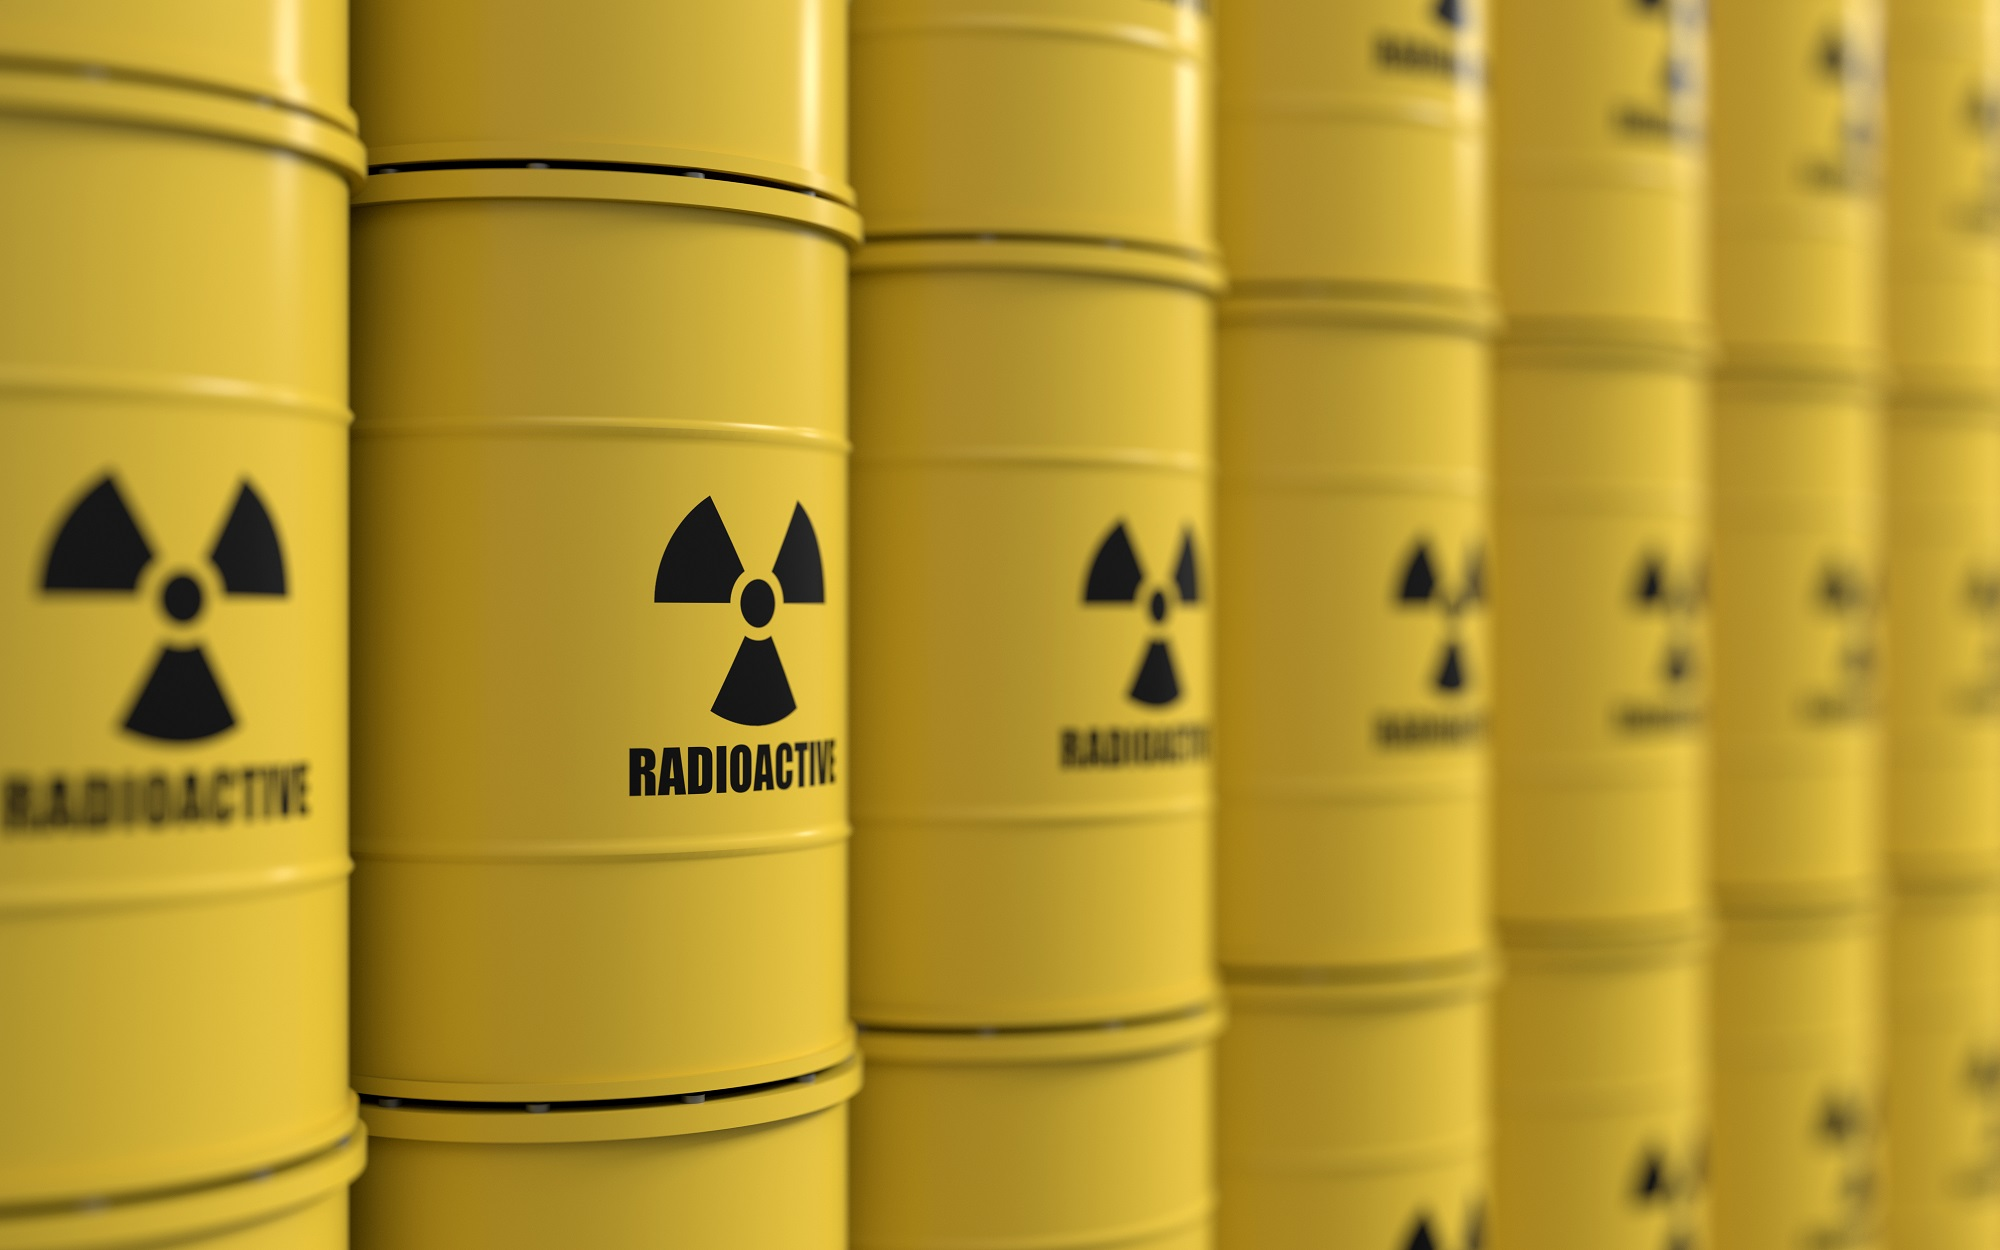 radioactive barrels stacked